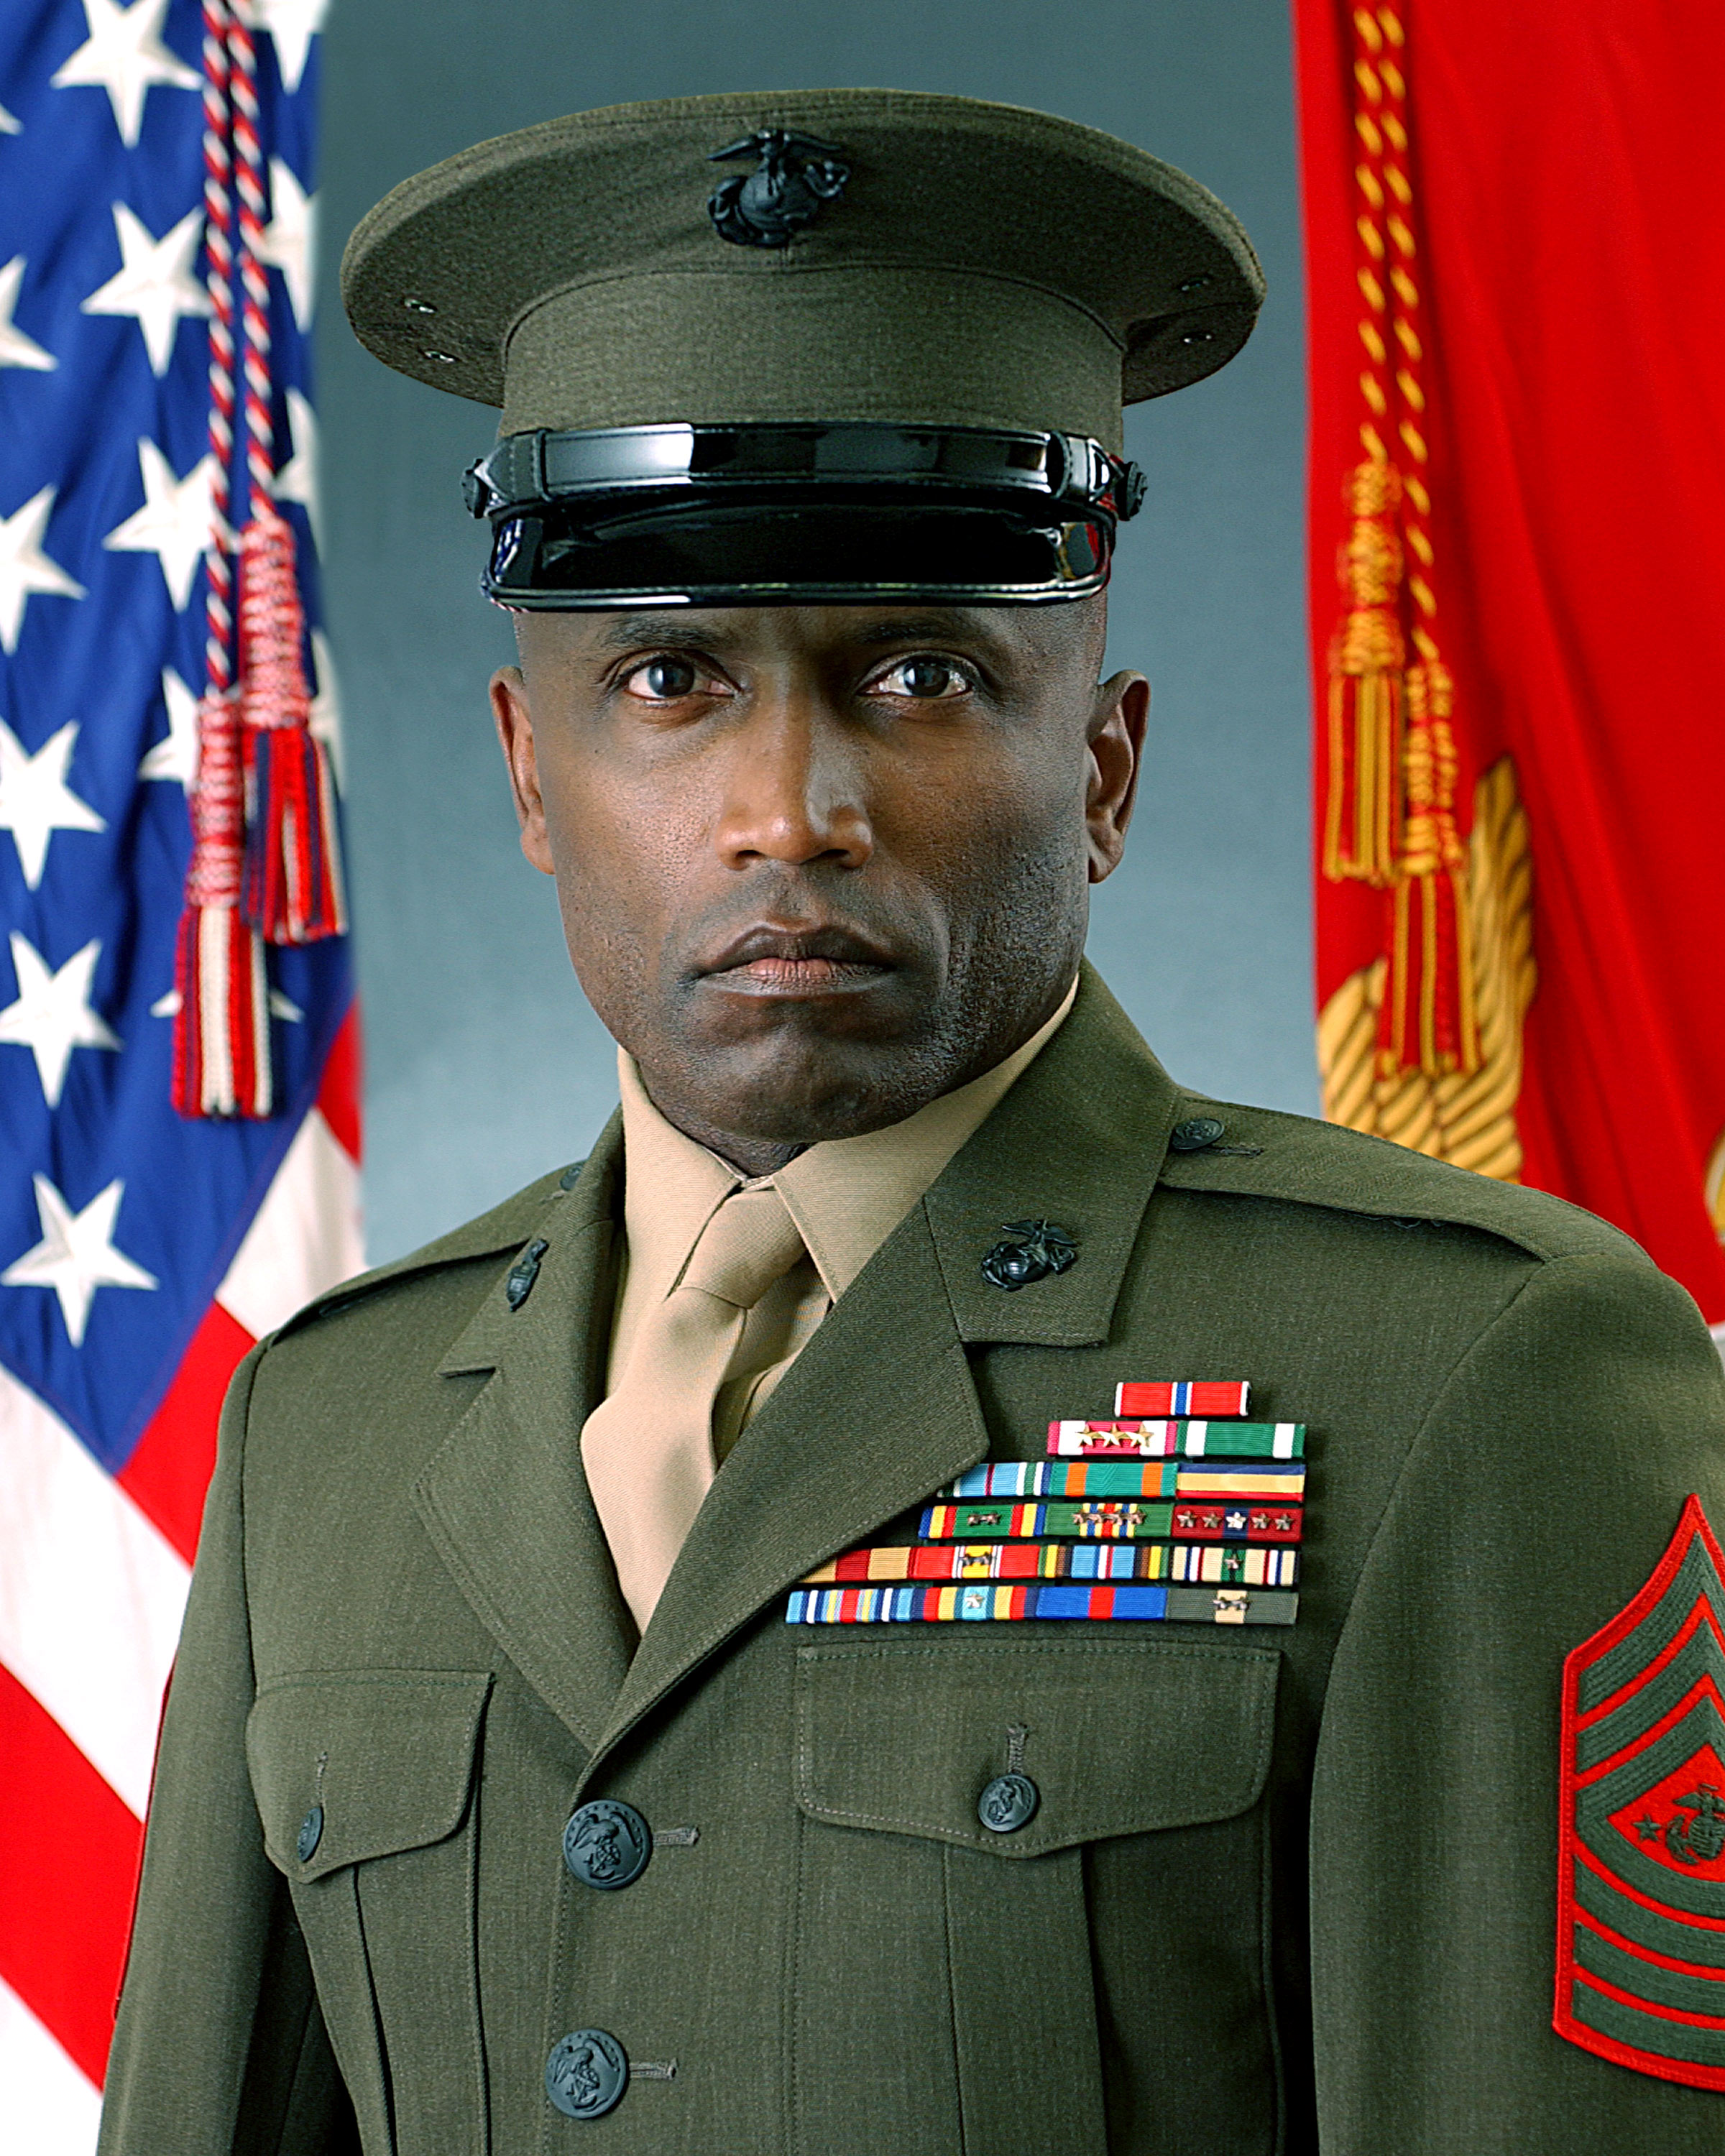 Marine Corps News: Former Sergeant Major of Marine Corps to Serve as Ambassador to Trinidad and Tobago